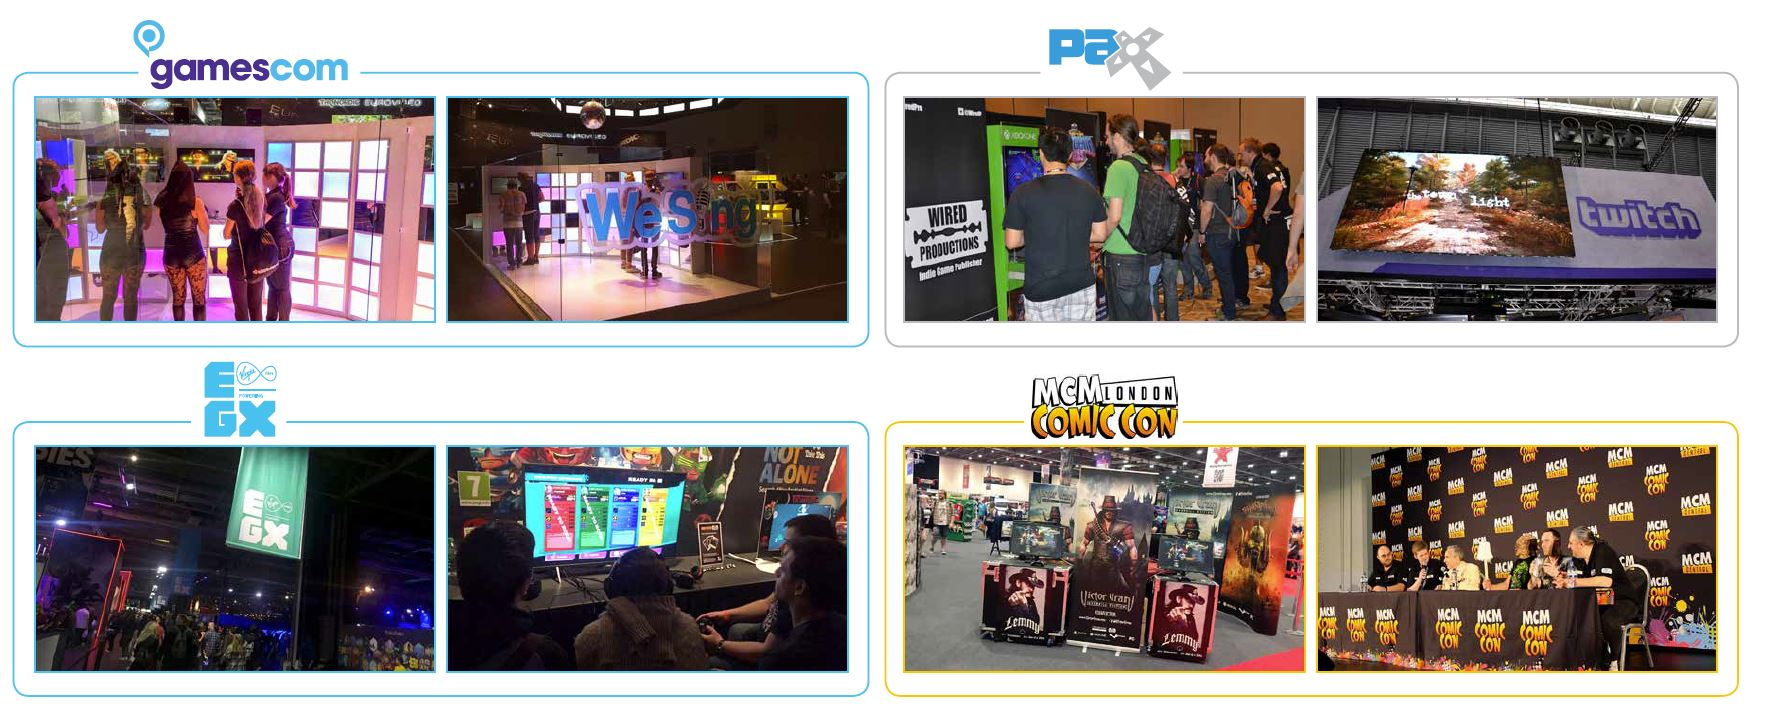 Image of Wired events such as Gamescom, PAX, EGX and MCM Comic Con